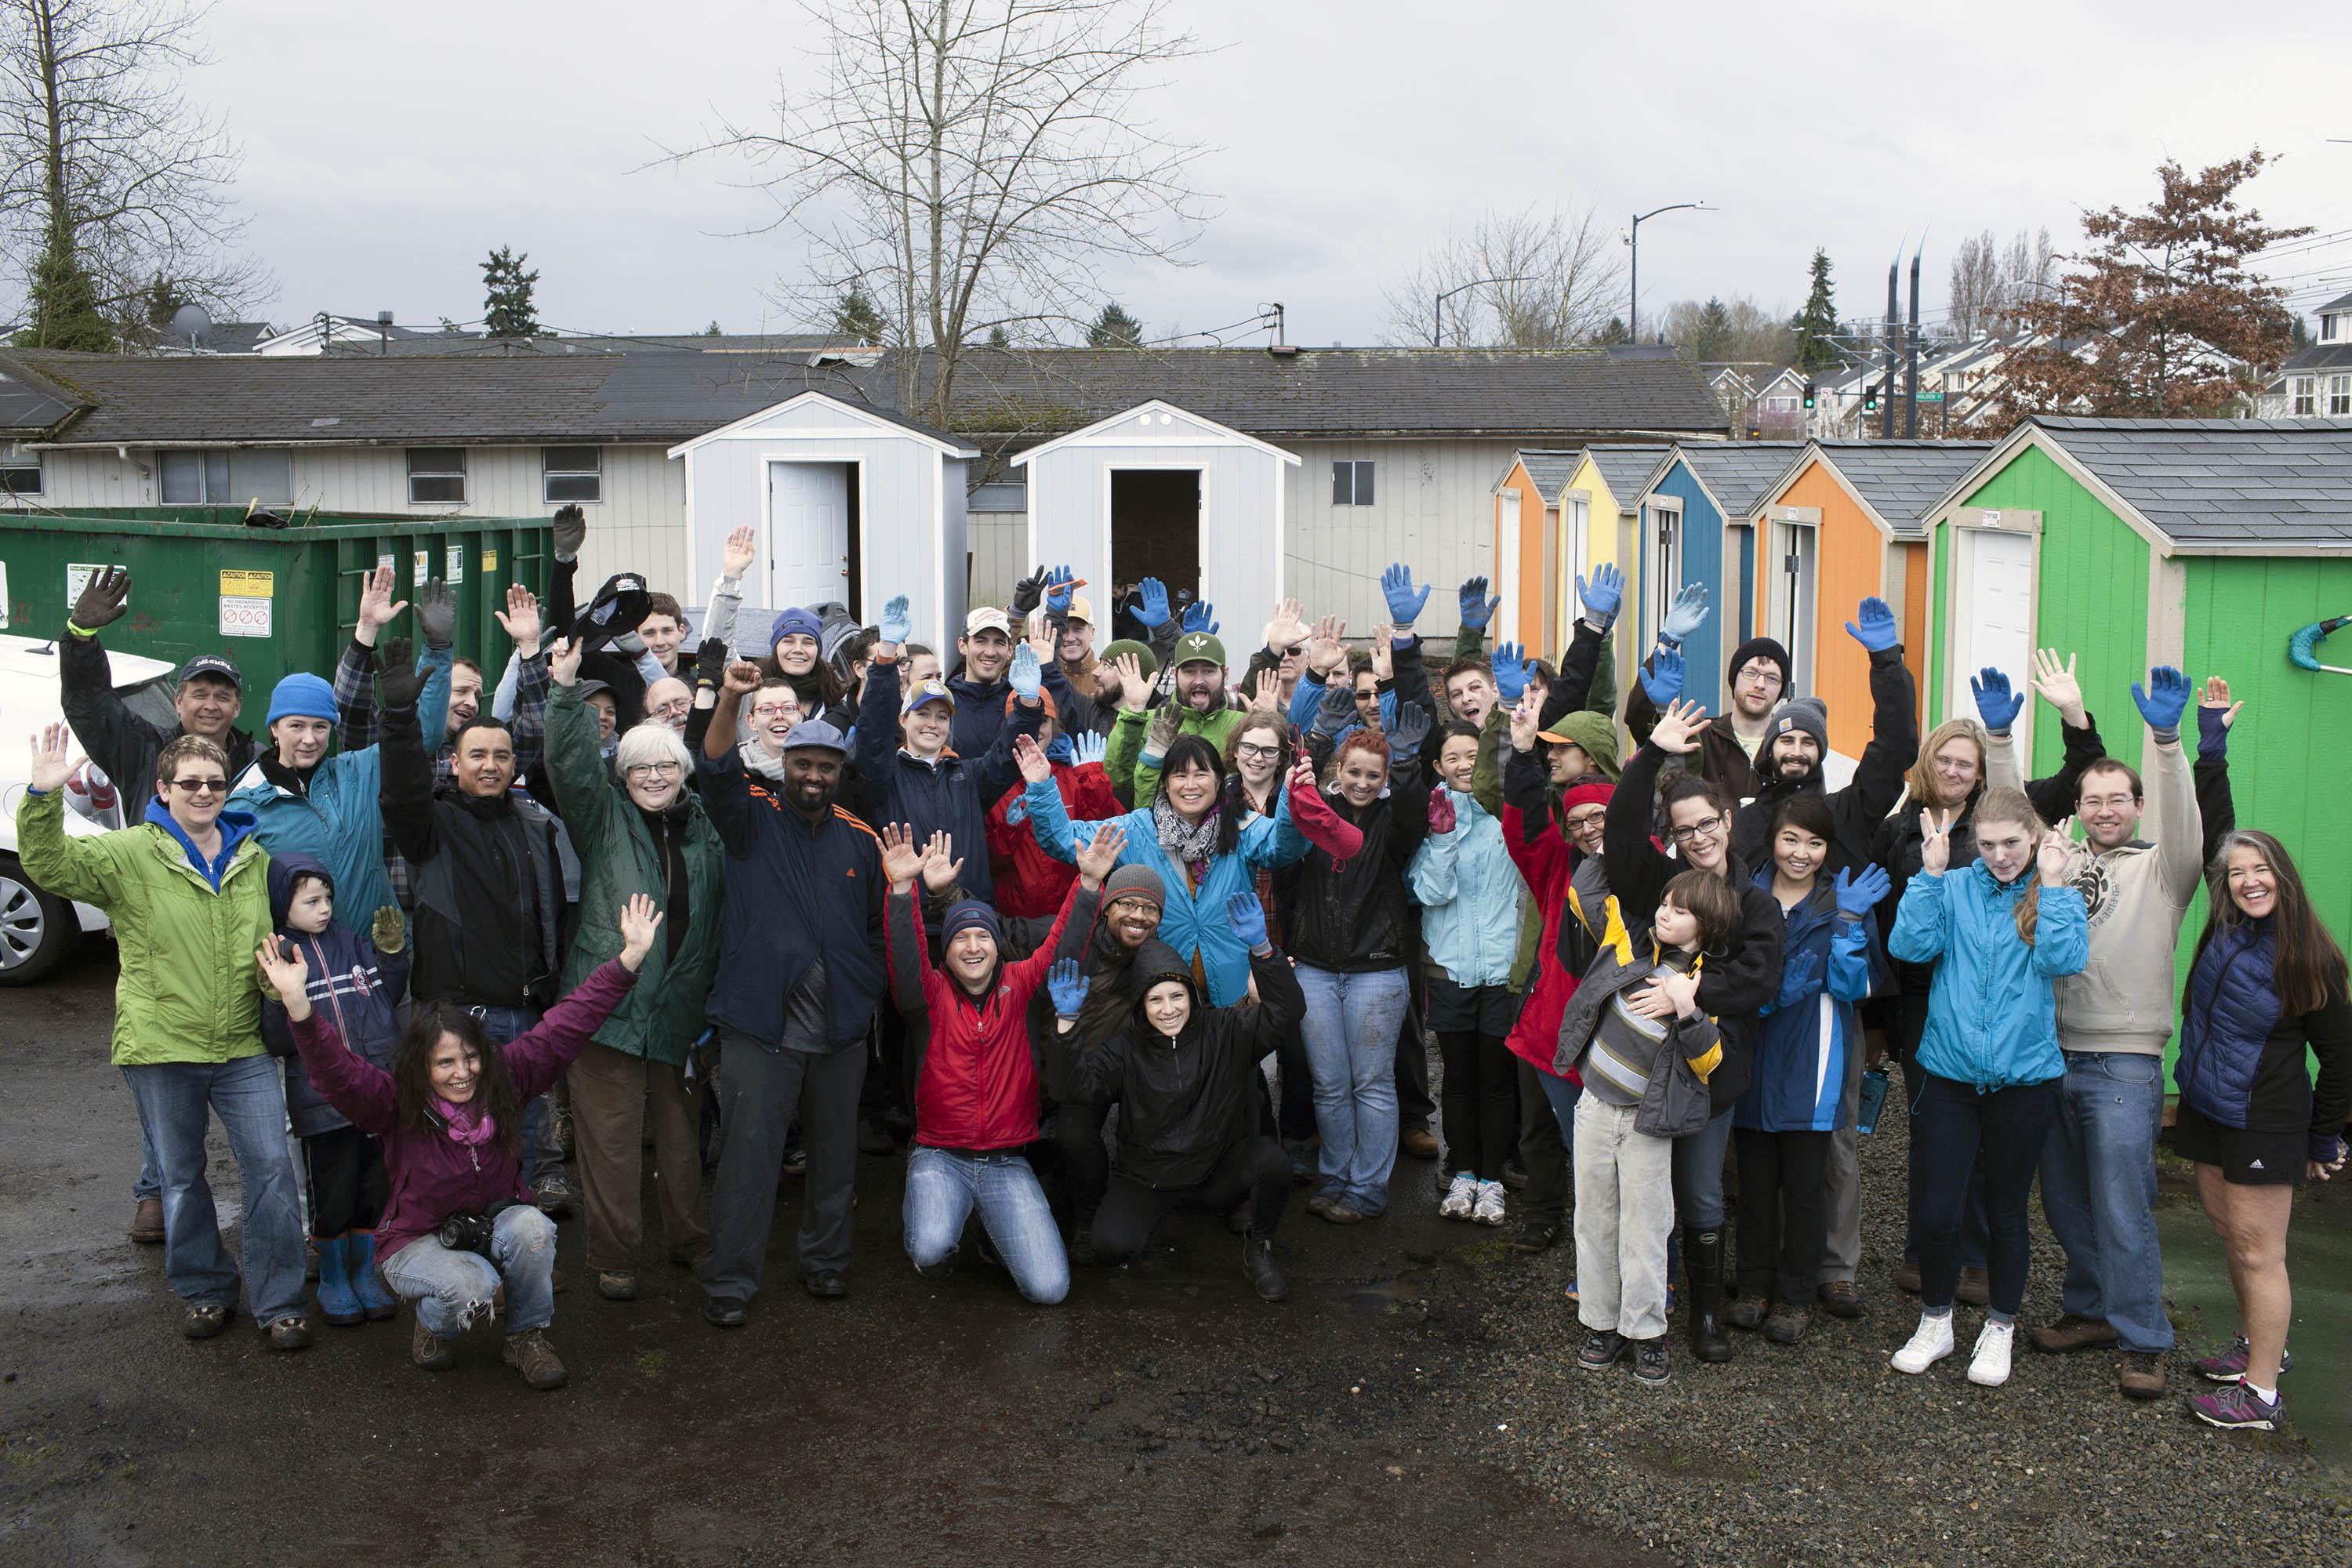 Construction begins on homeless encampment in Seattle's Rainier Valley